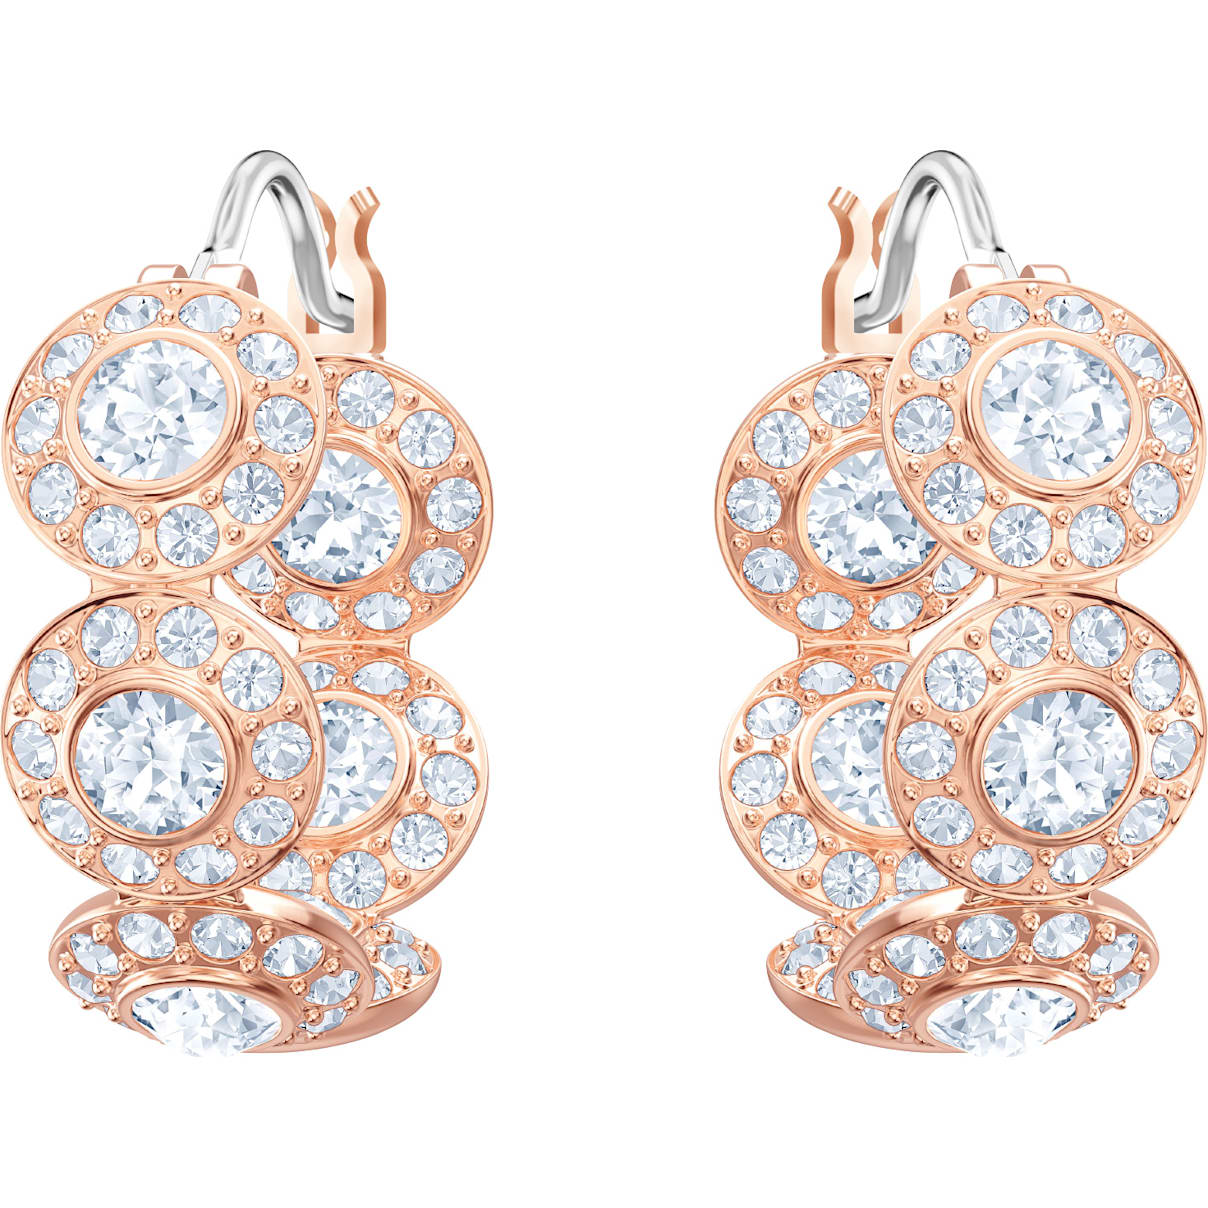 Swarovski Angelic Hoop Pierced Earrings, White, Rose-gold tone plated